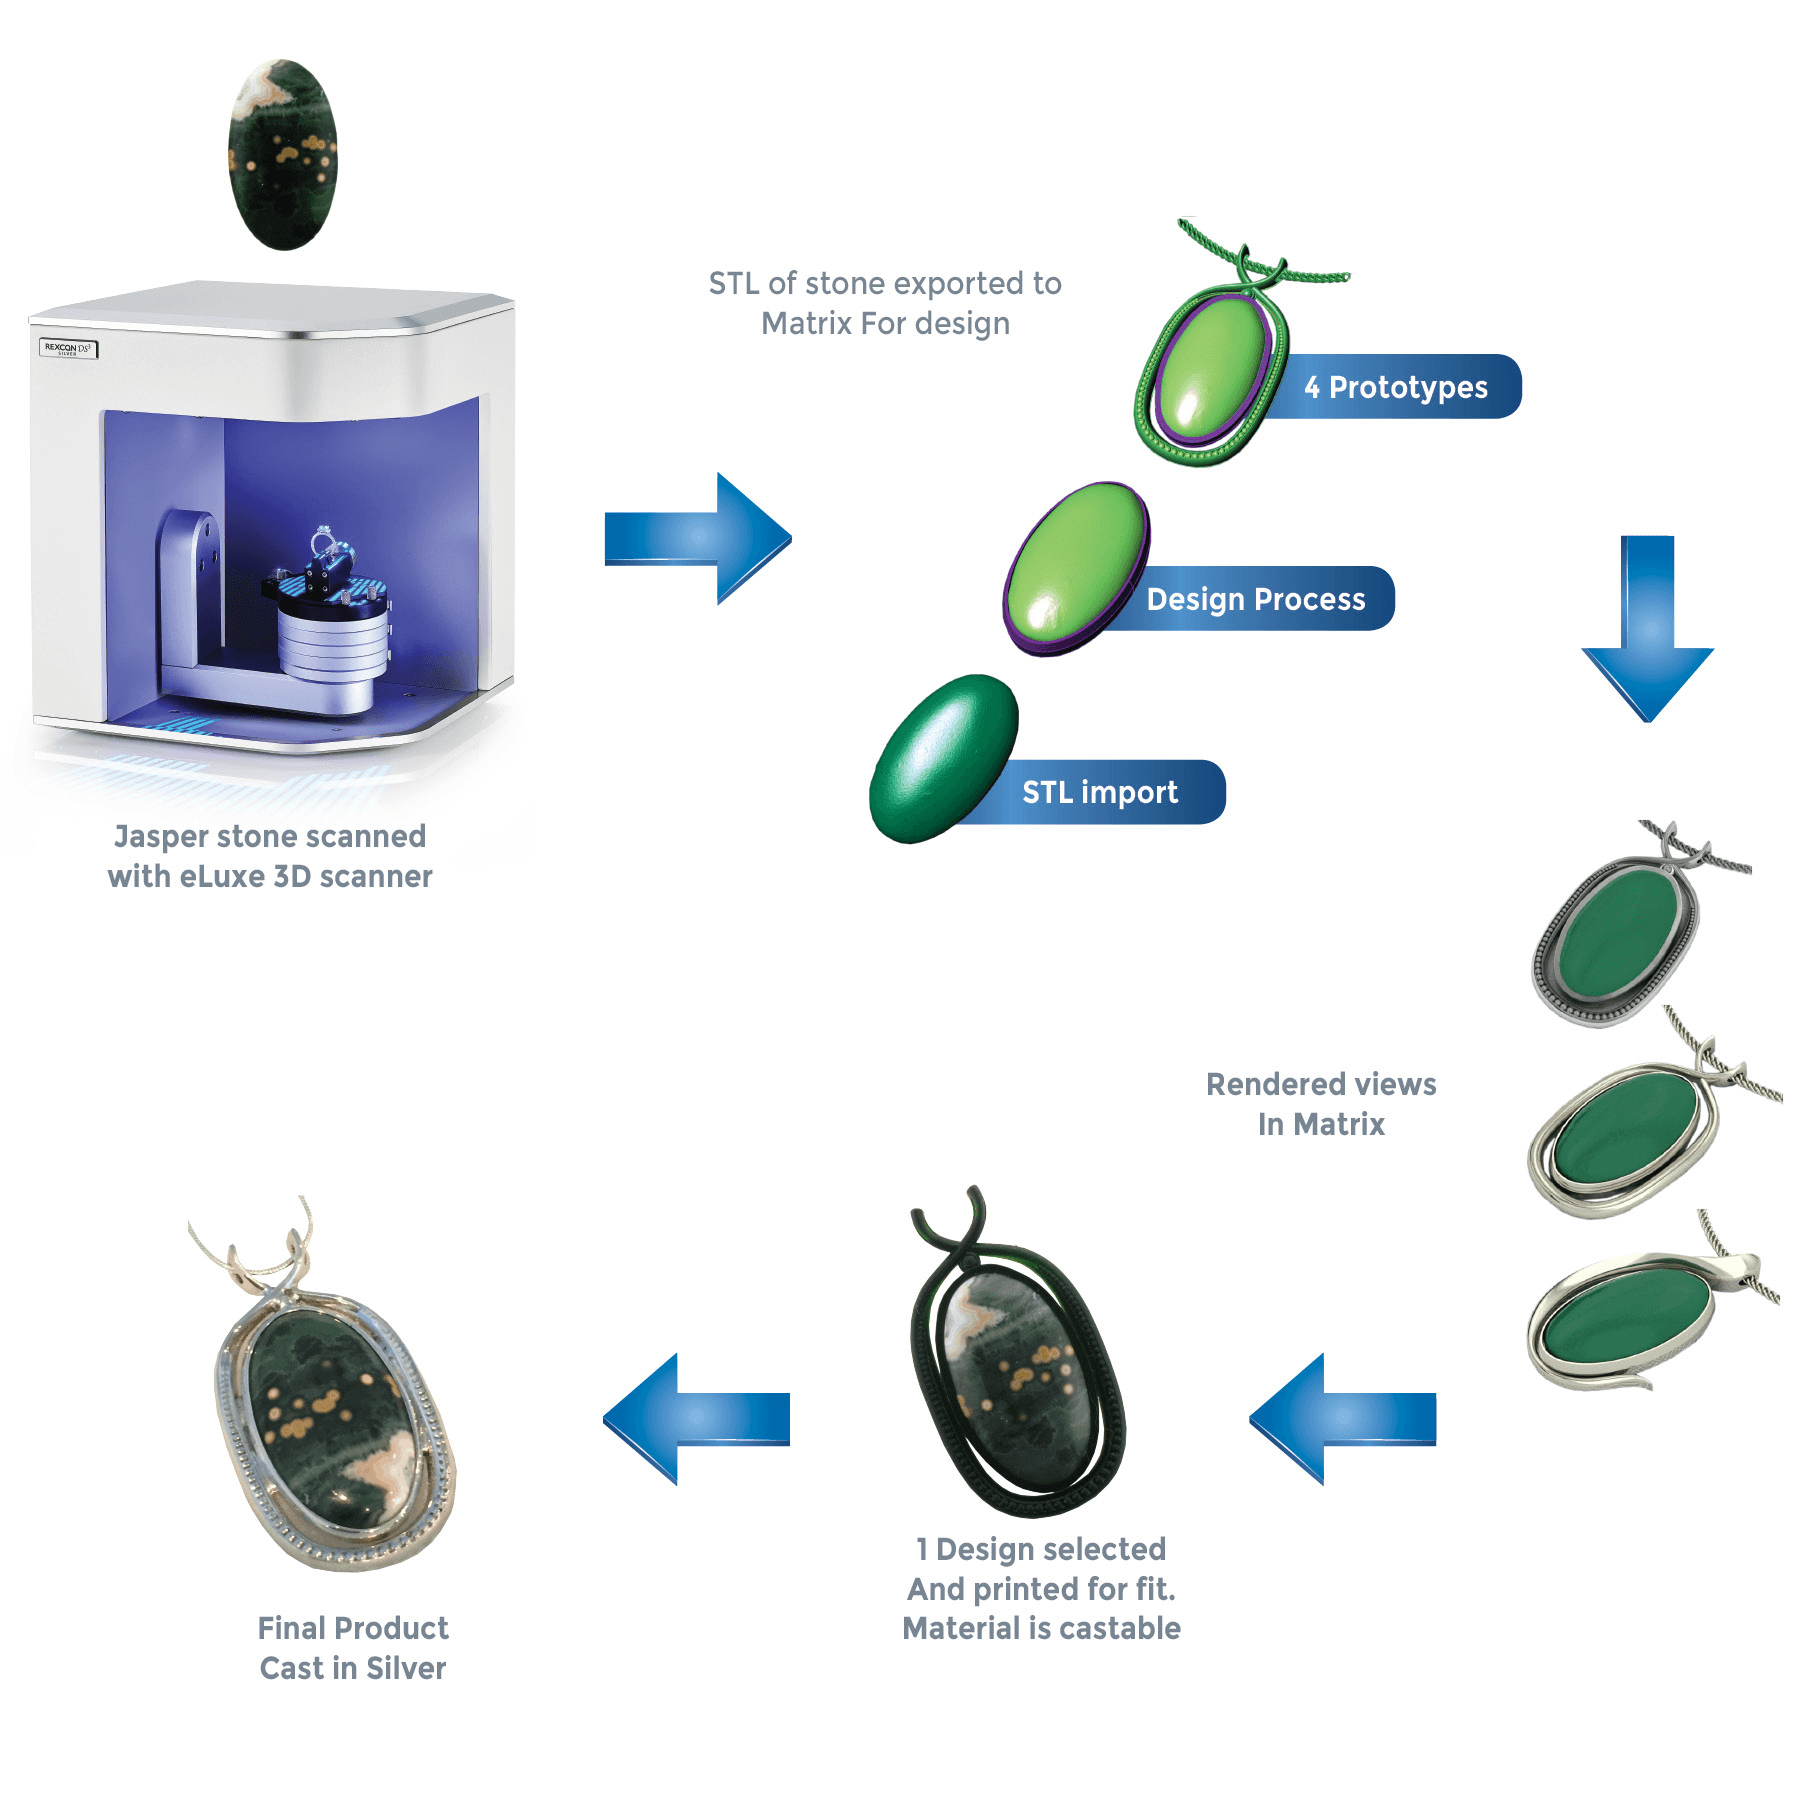 Typical 3D jewelry scanning workflow